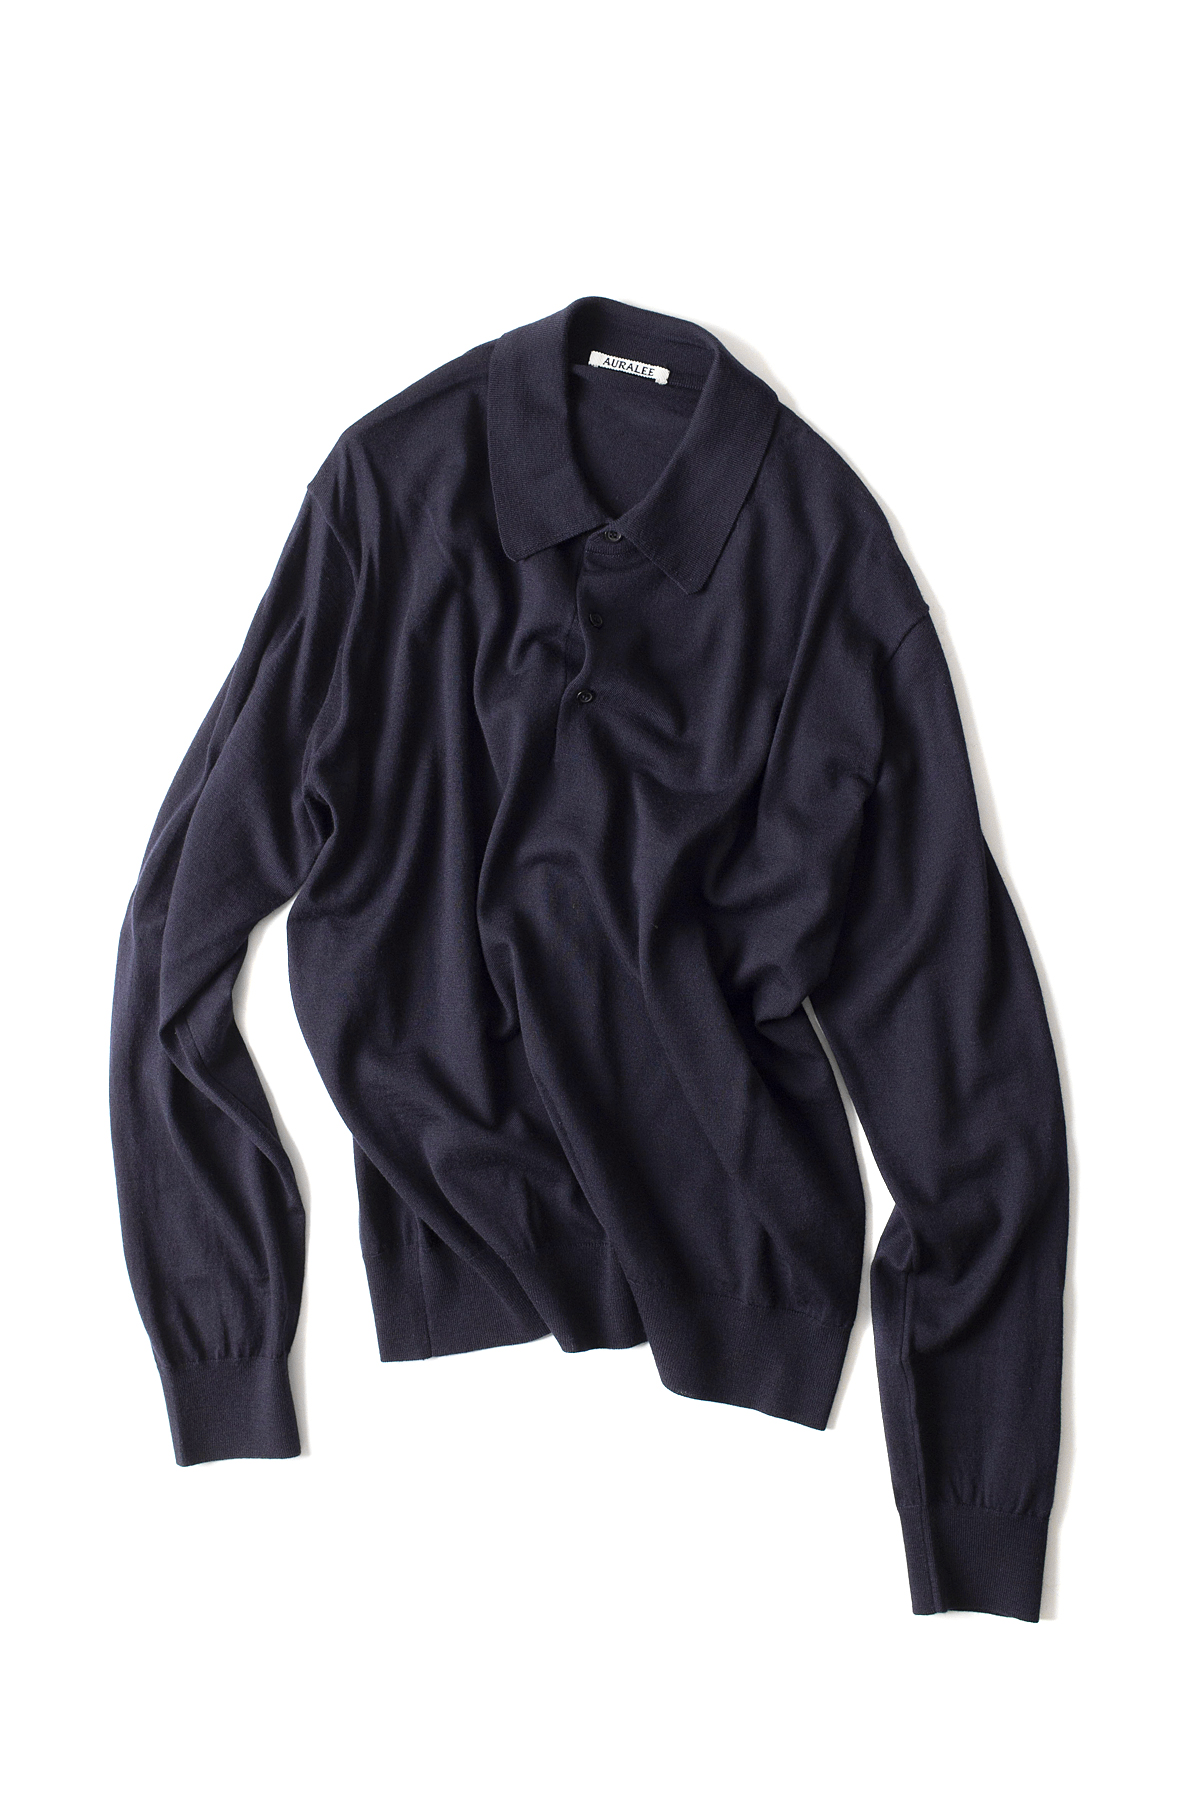 Auralee : Wool Cashmere High Gauge Knit Polo (Navy)